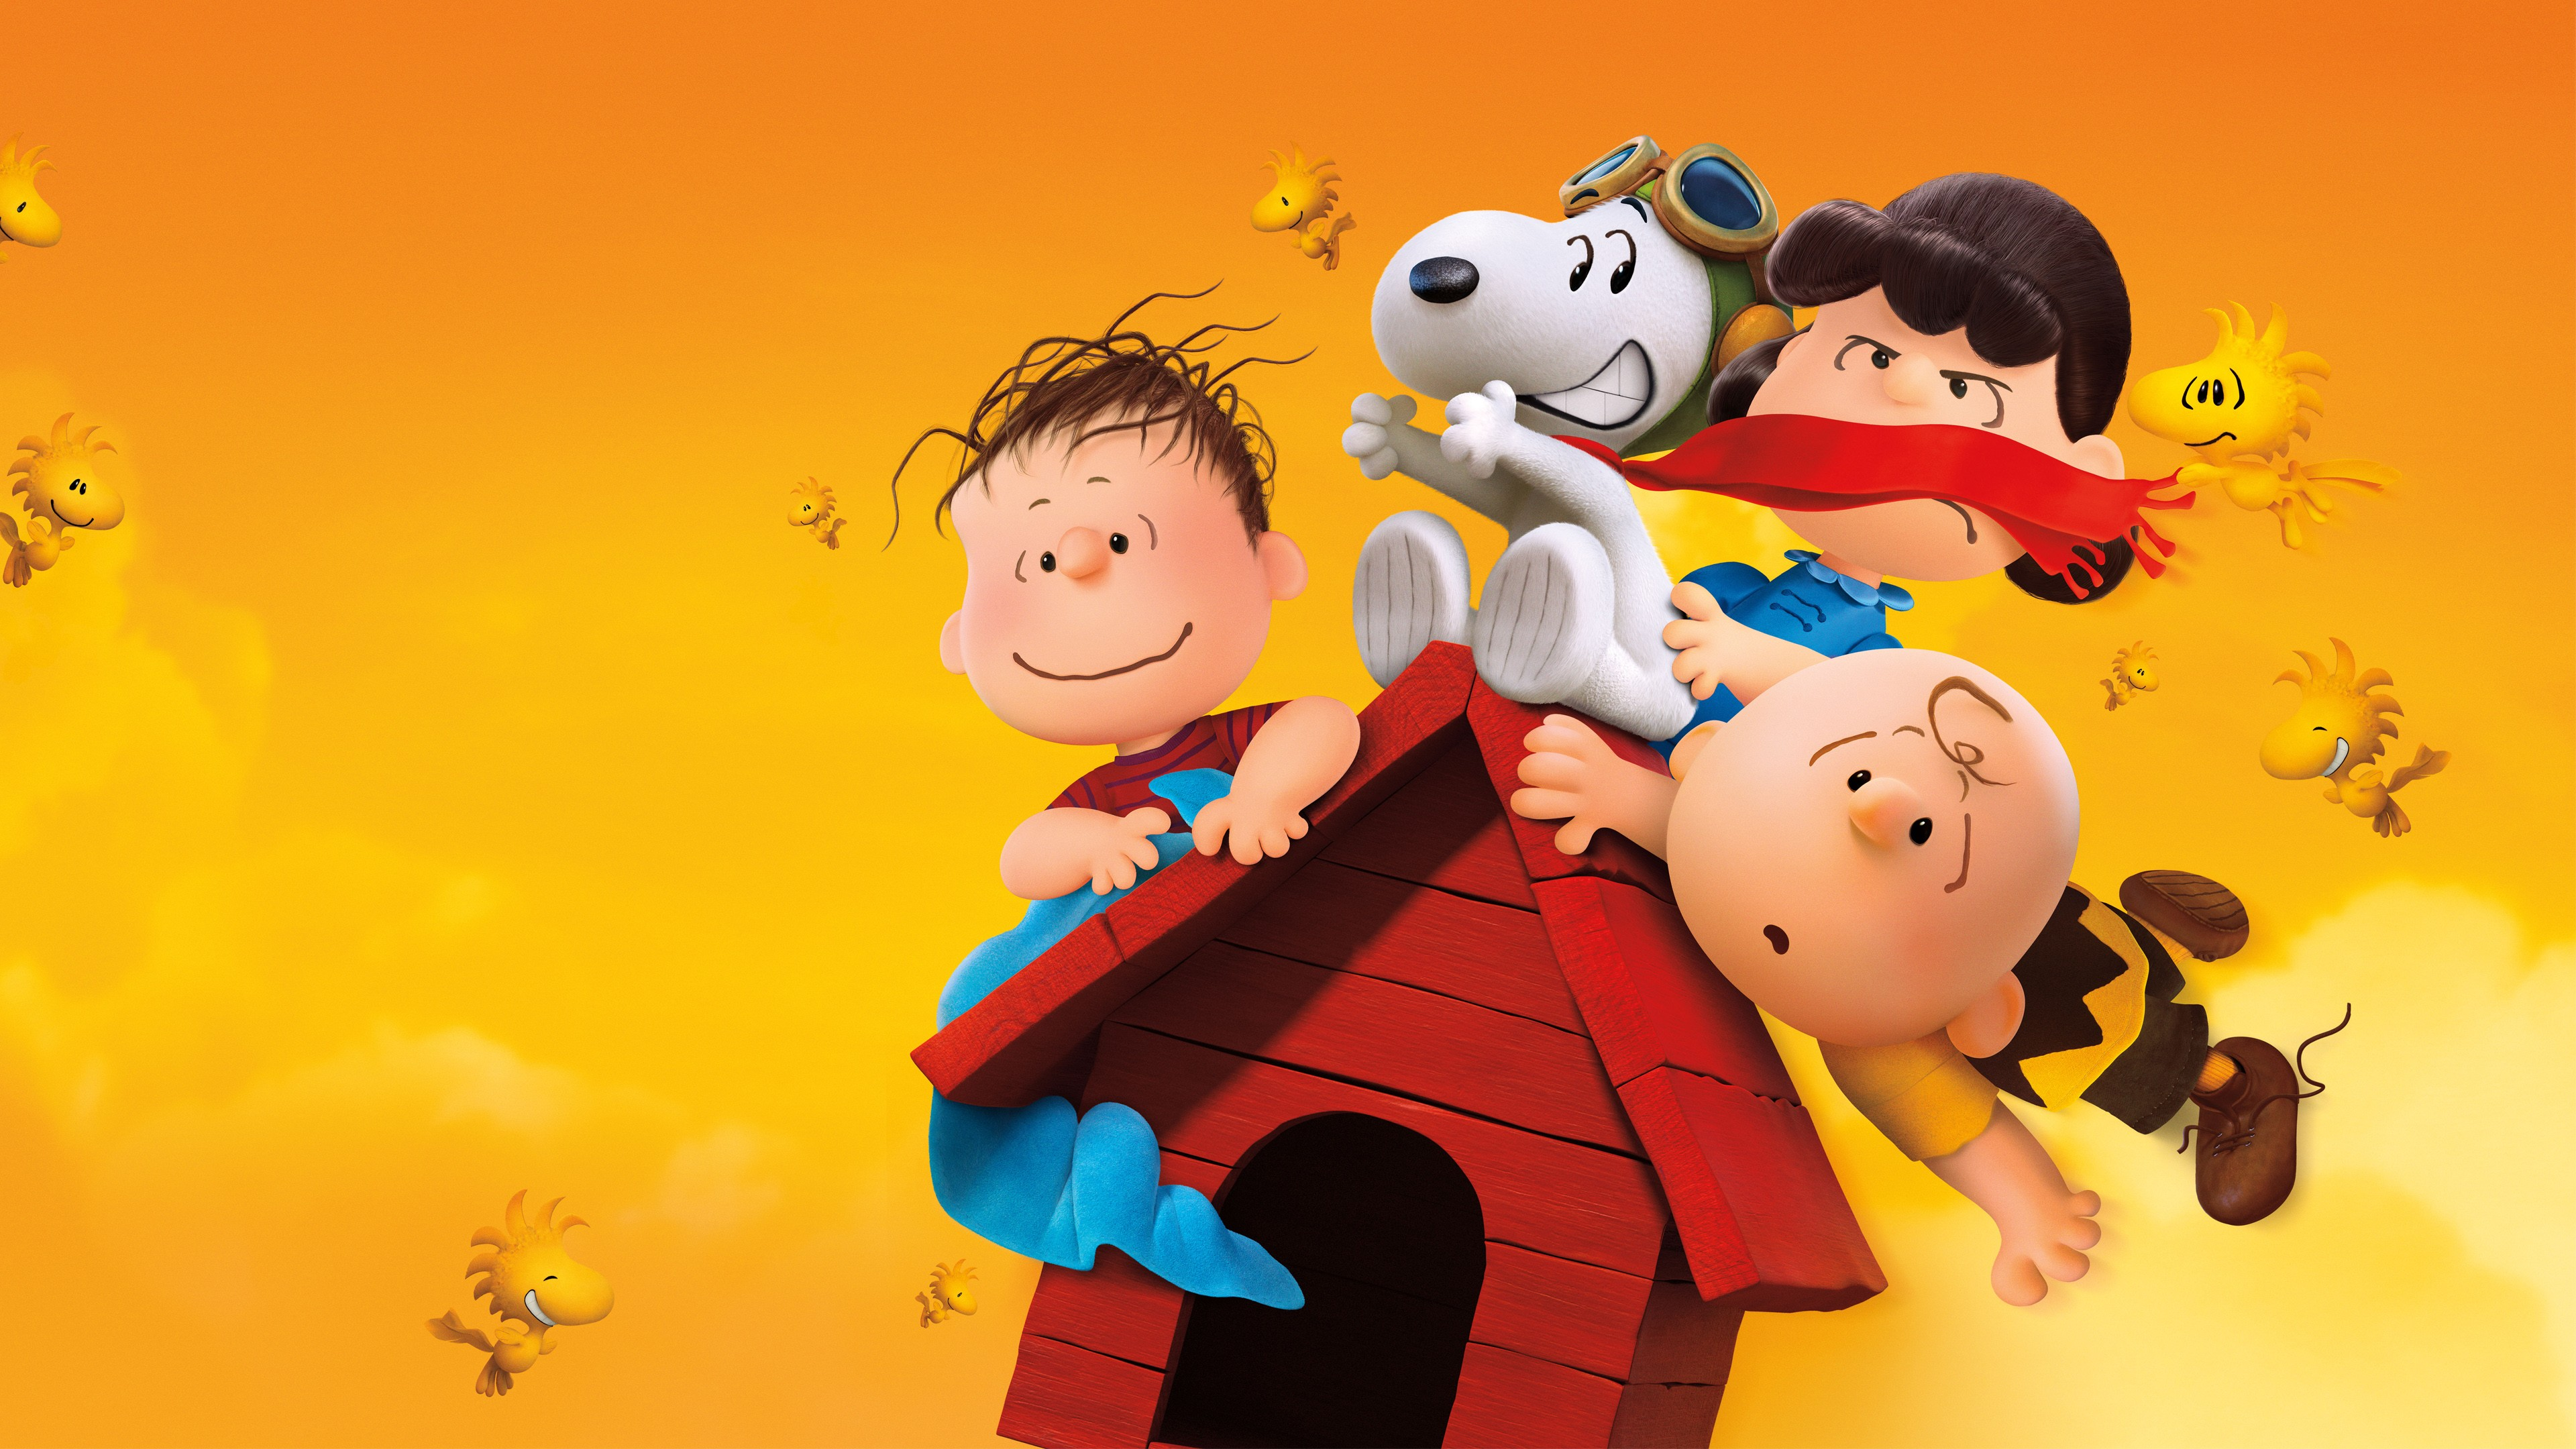 Caribbean Iphone Wallpaper 2015 The Peanuts Movie Wallpapers Hd Wallpapers Id 16344